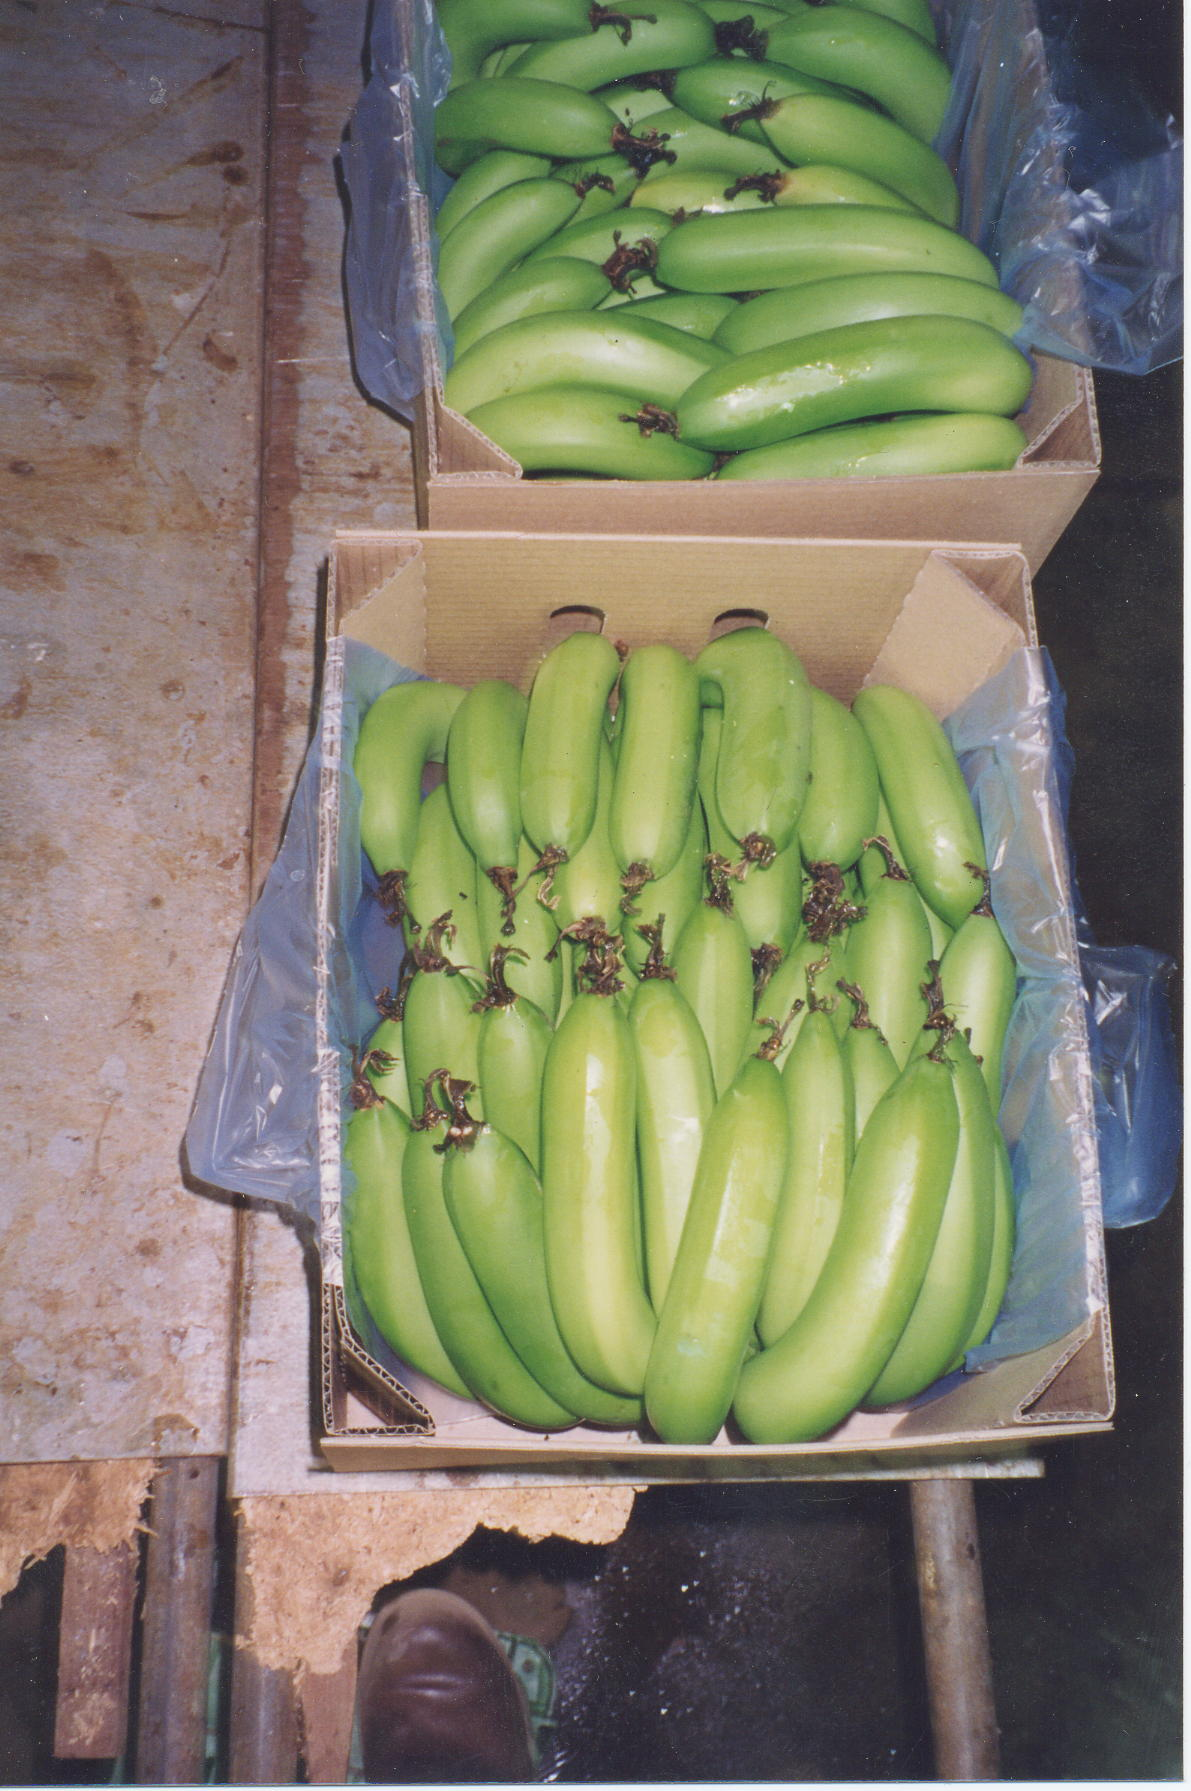 Harvesting, packing and storing bananas in the ORIA